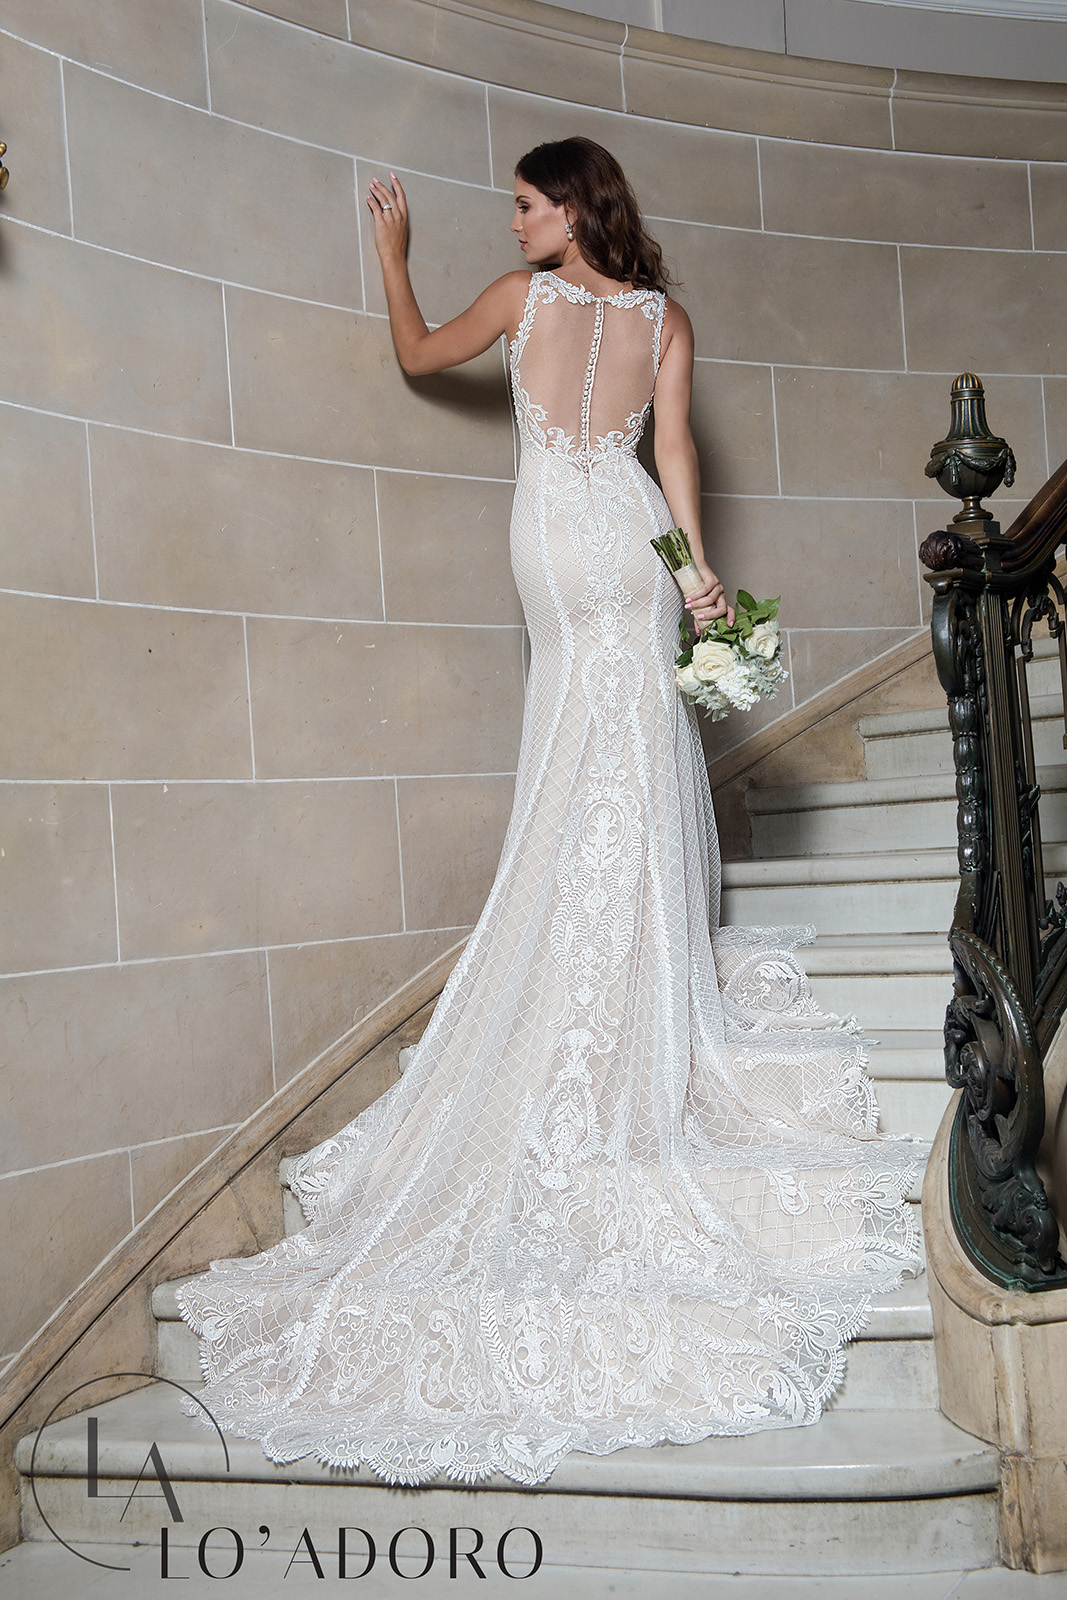 High Neckline Fitted Long Lo' Adoro Bridal in White Color